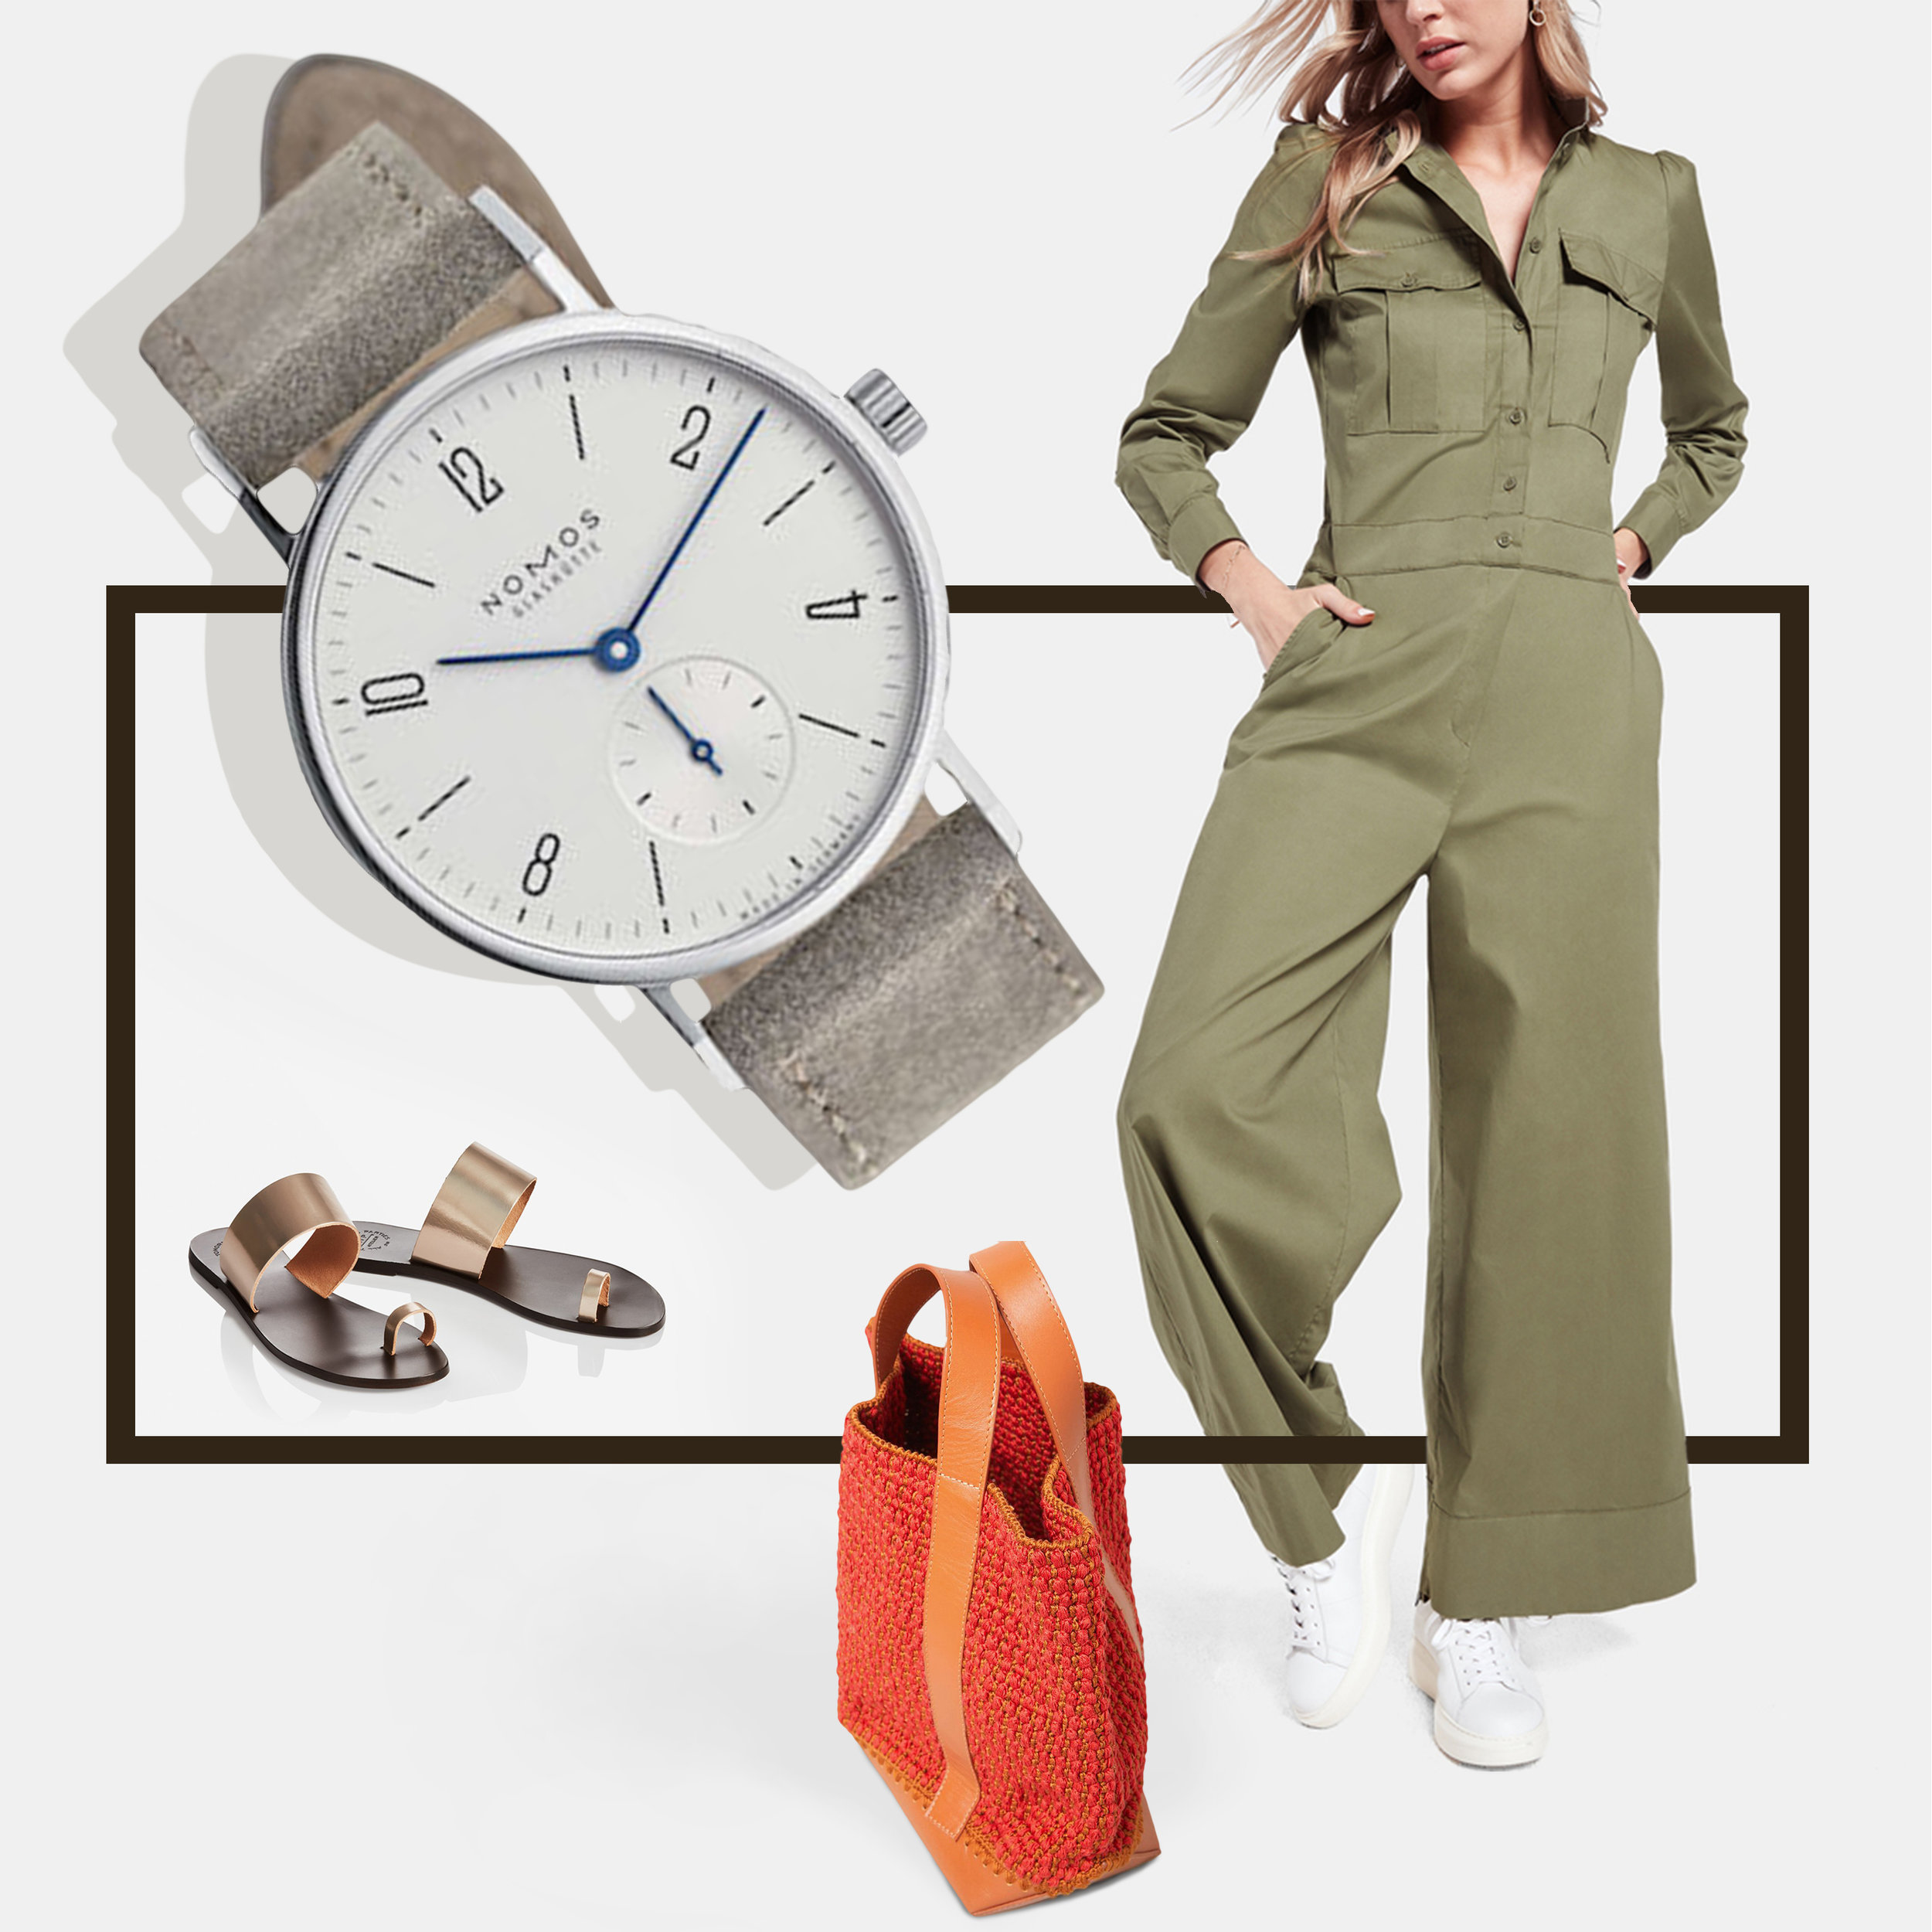 An easy day-to-evening jumpsuit is elevated by arty, streamlined accessories like the sleek NOMOS Glashütte Tangente 33 and a tomato-hued tote by Rachel Comey. - Clockwise from top left: G.Label utility jumpsuit, $450; ATP Atelier Astrid sandals, $128; NOMOS Glashütte Tangente 33 watch, $1,760; Rachel Comey crochet tote, $350.